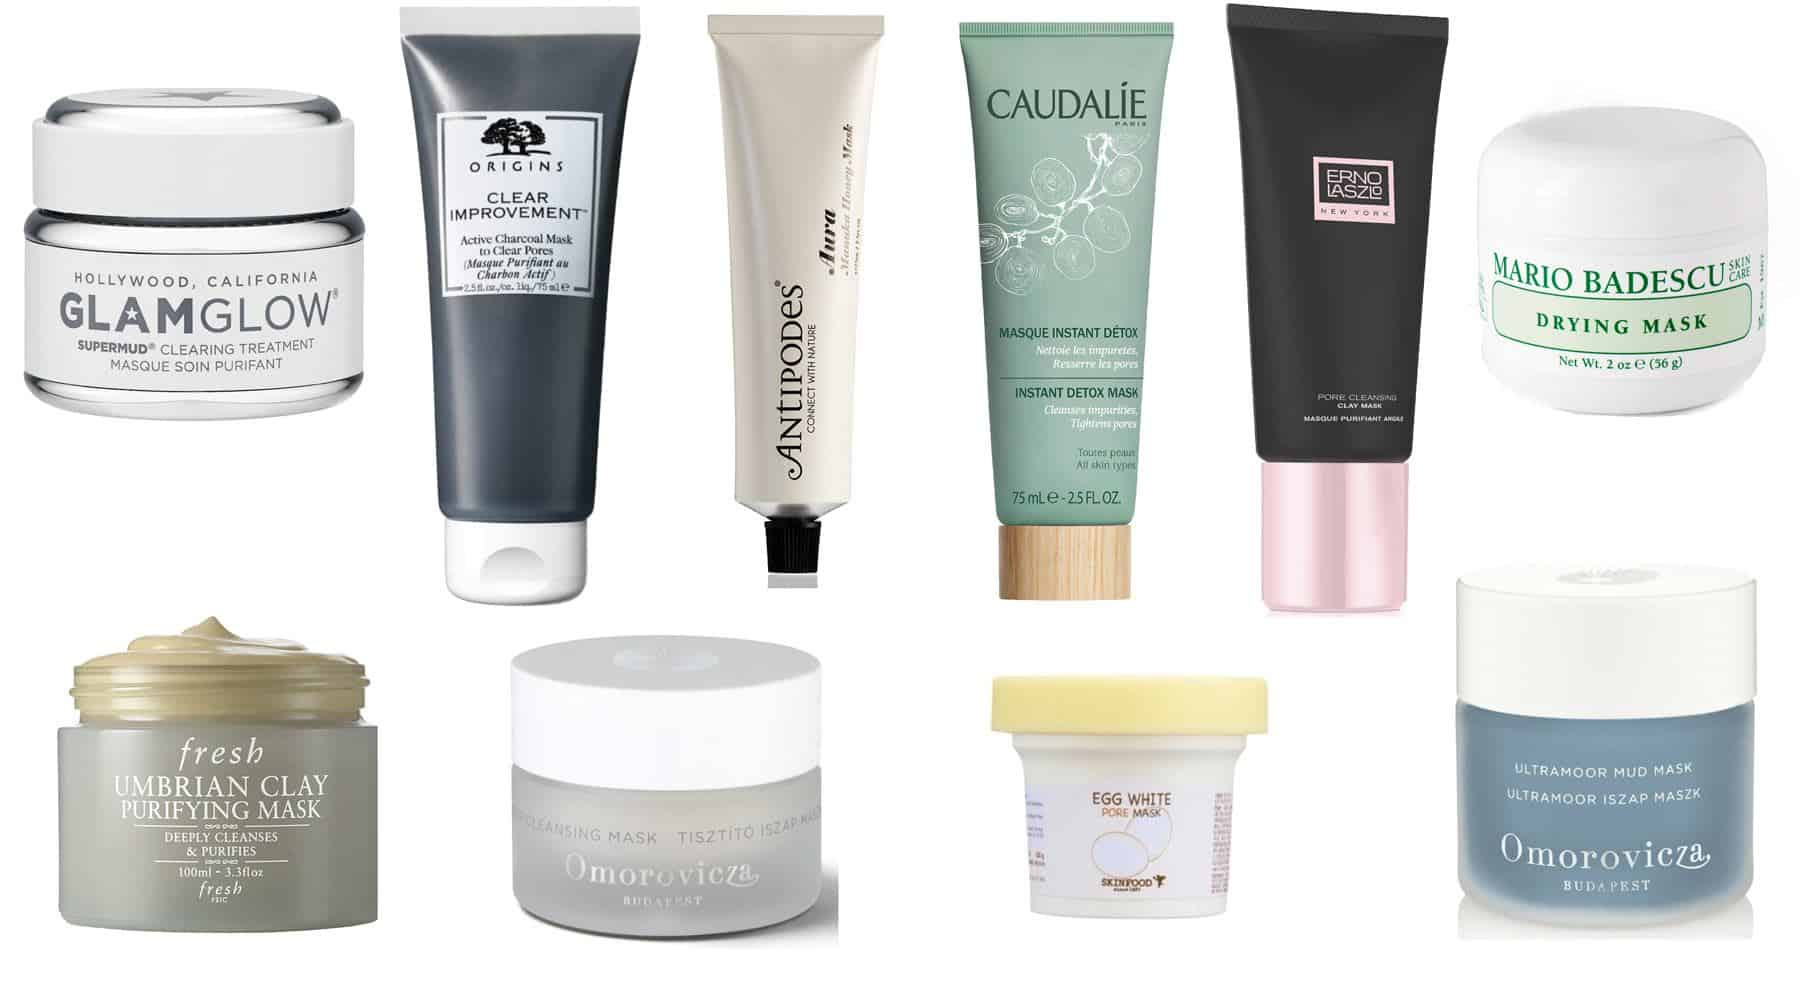 The Best Face Masks For Getting Rid Of Your Blackheads In 2020 Beauty With Hollie